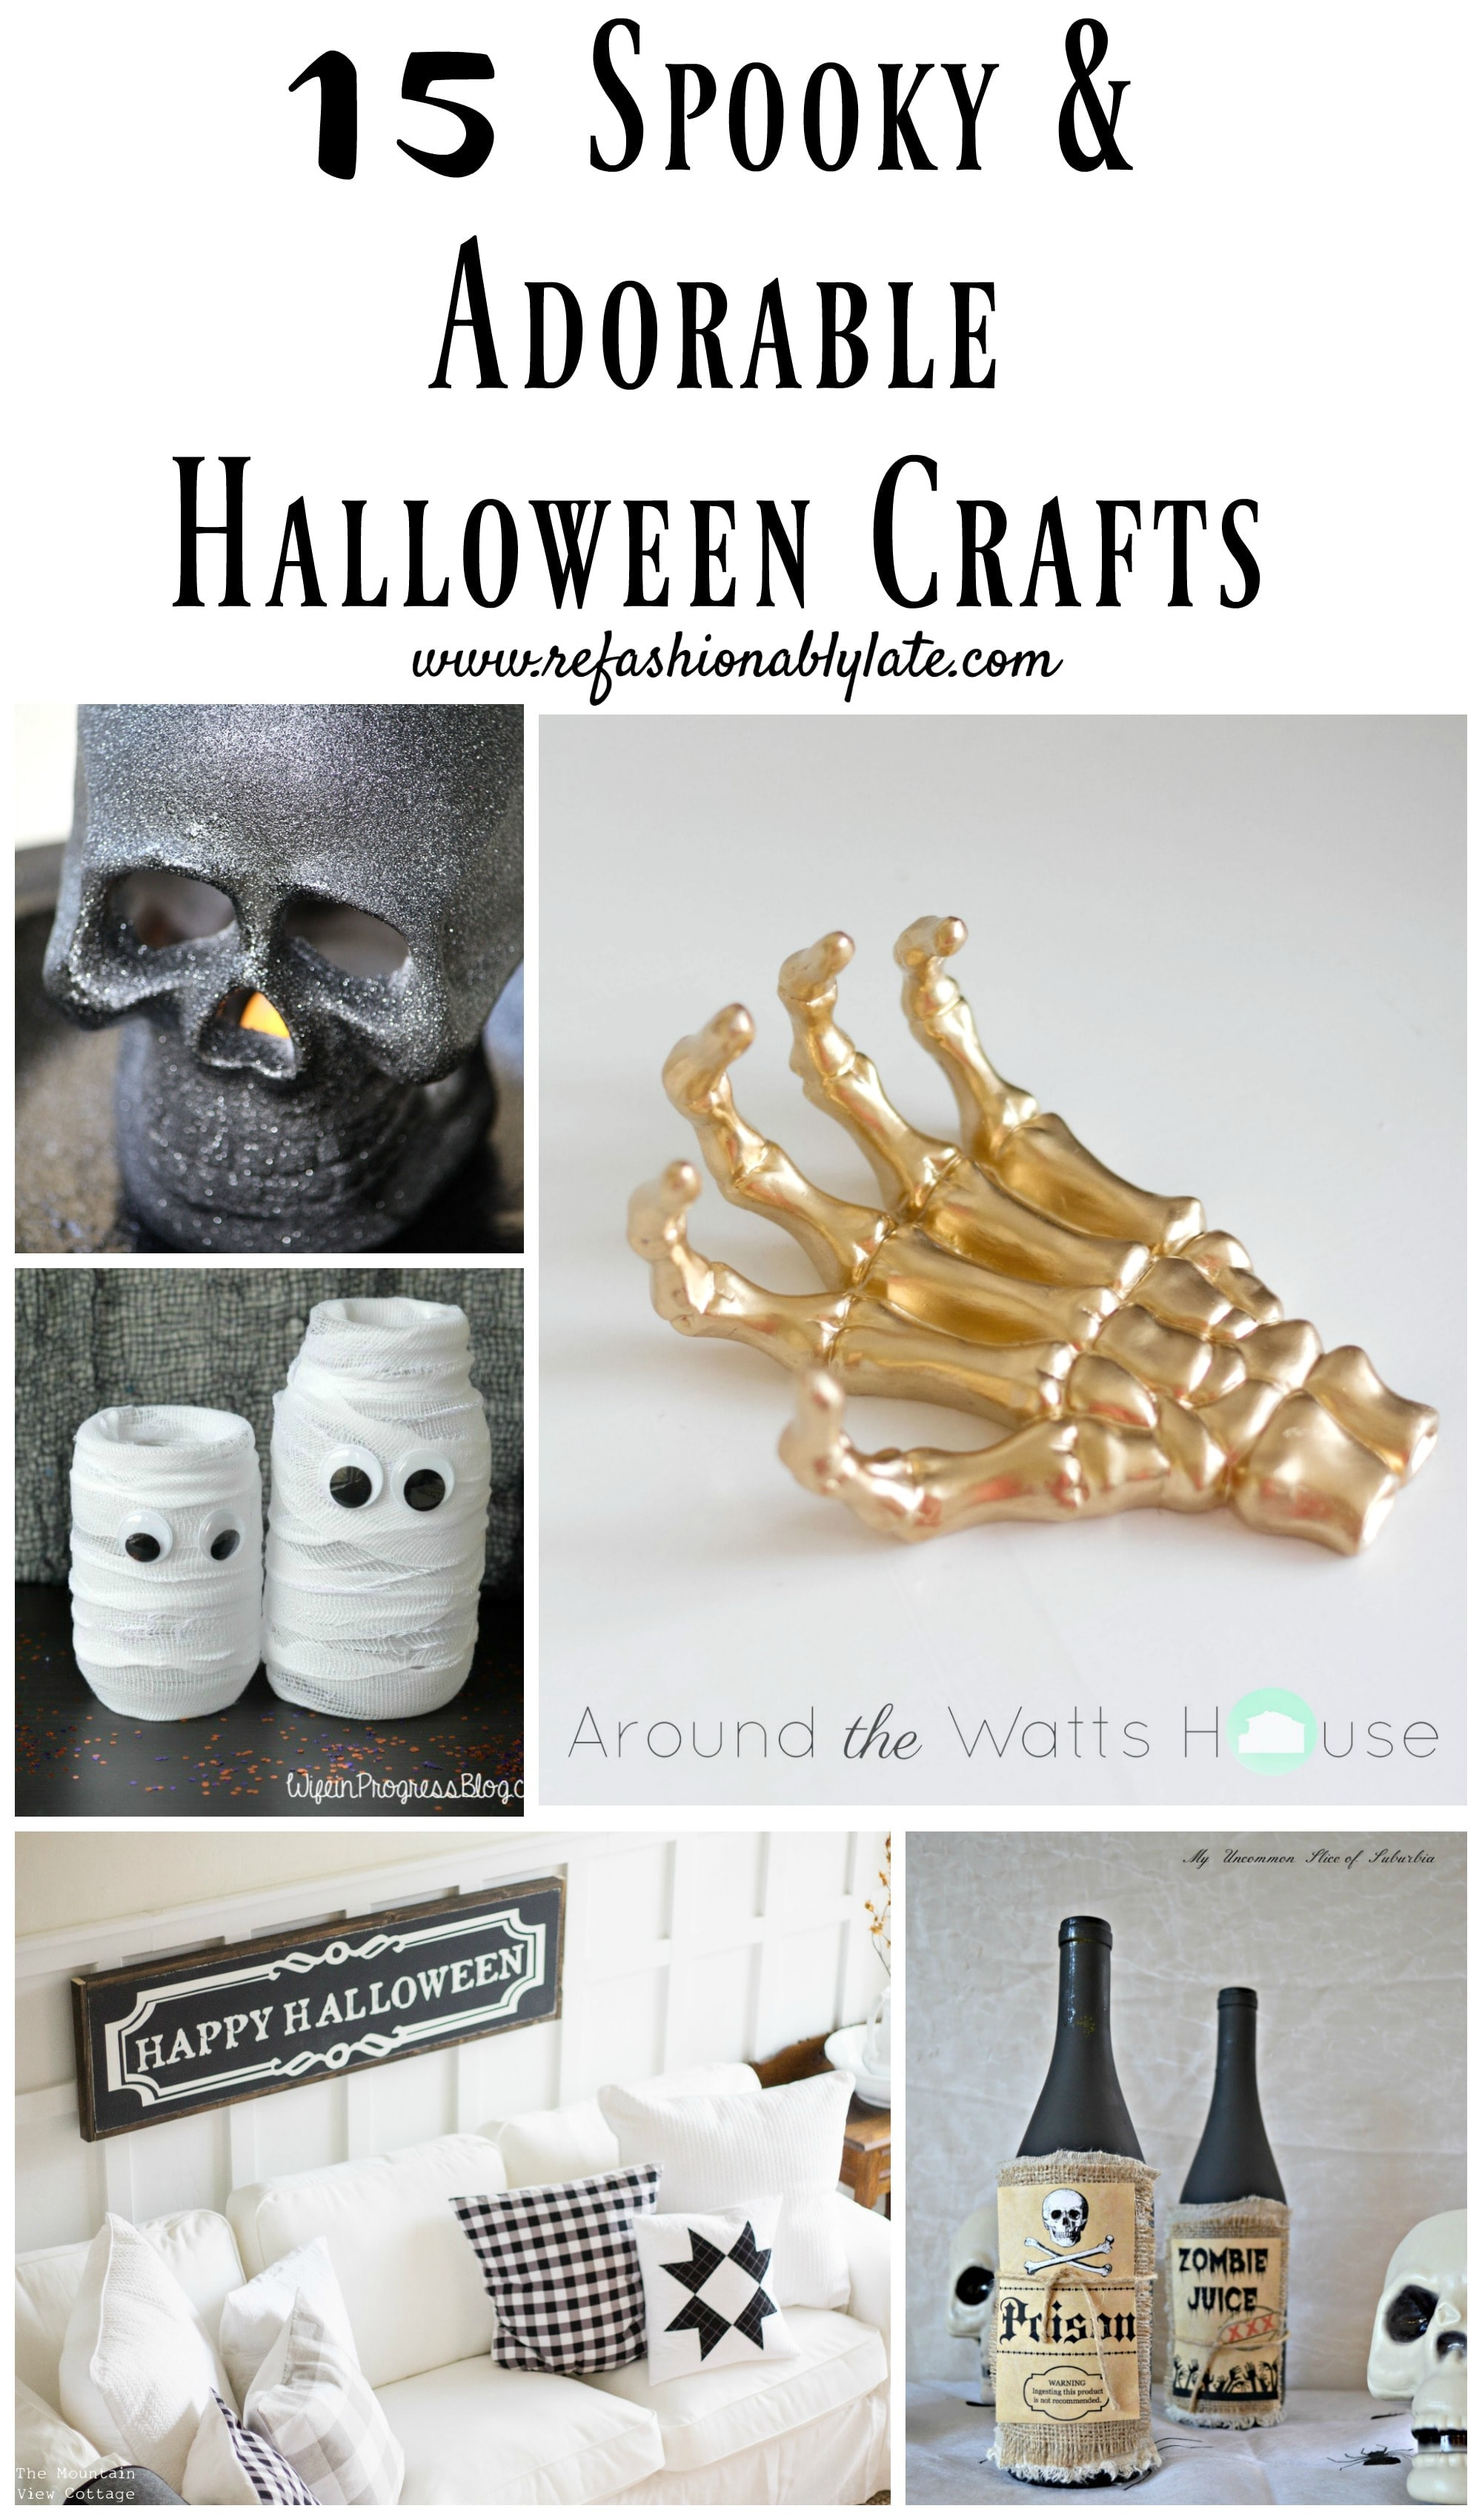 15 Spooky Adorable Halloween Crafts Refashionably Late